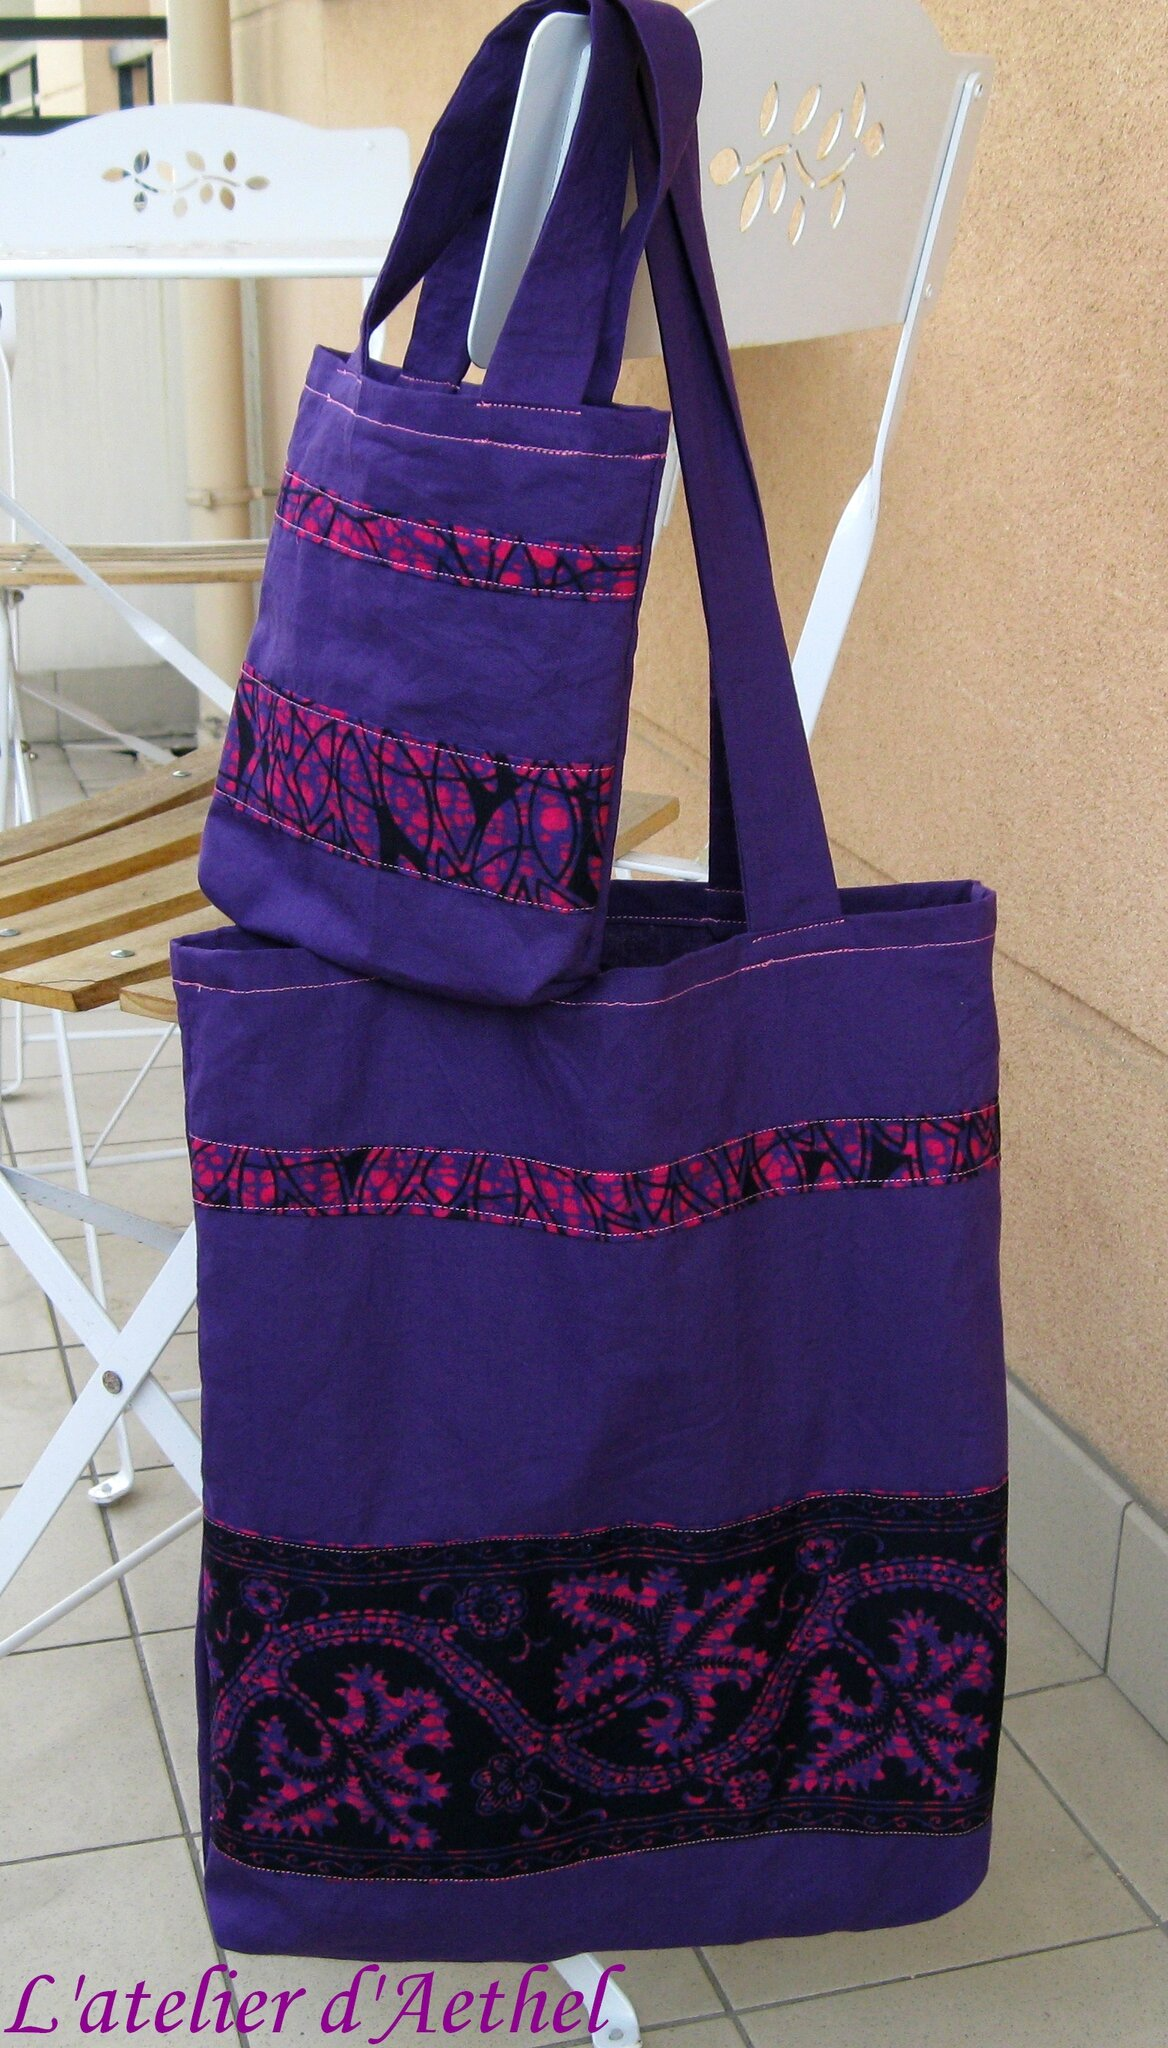 Tote bag duo mère-fille violet et rose